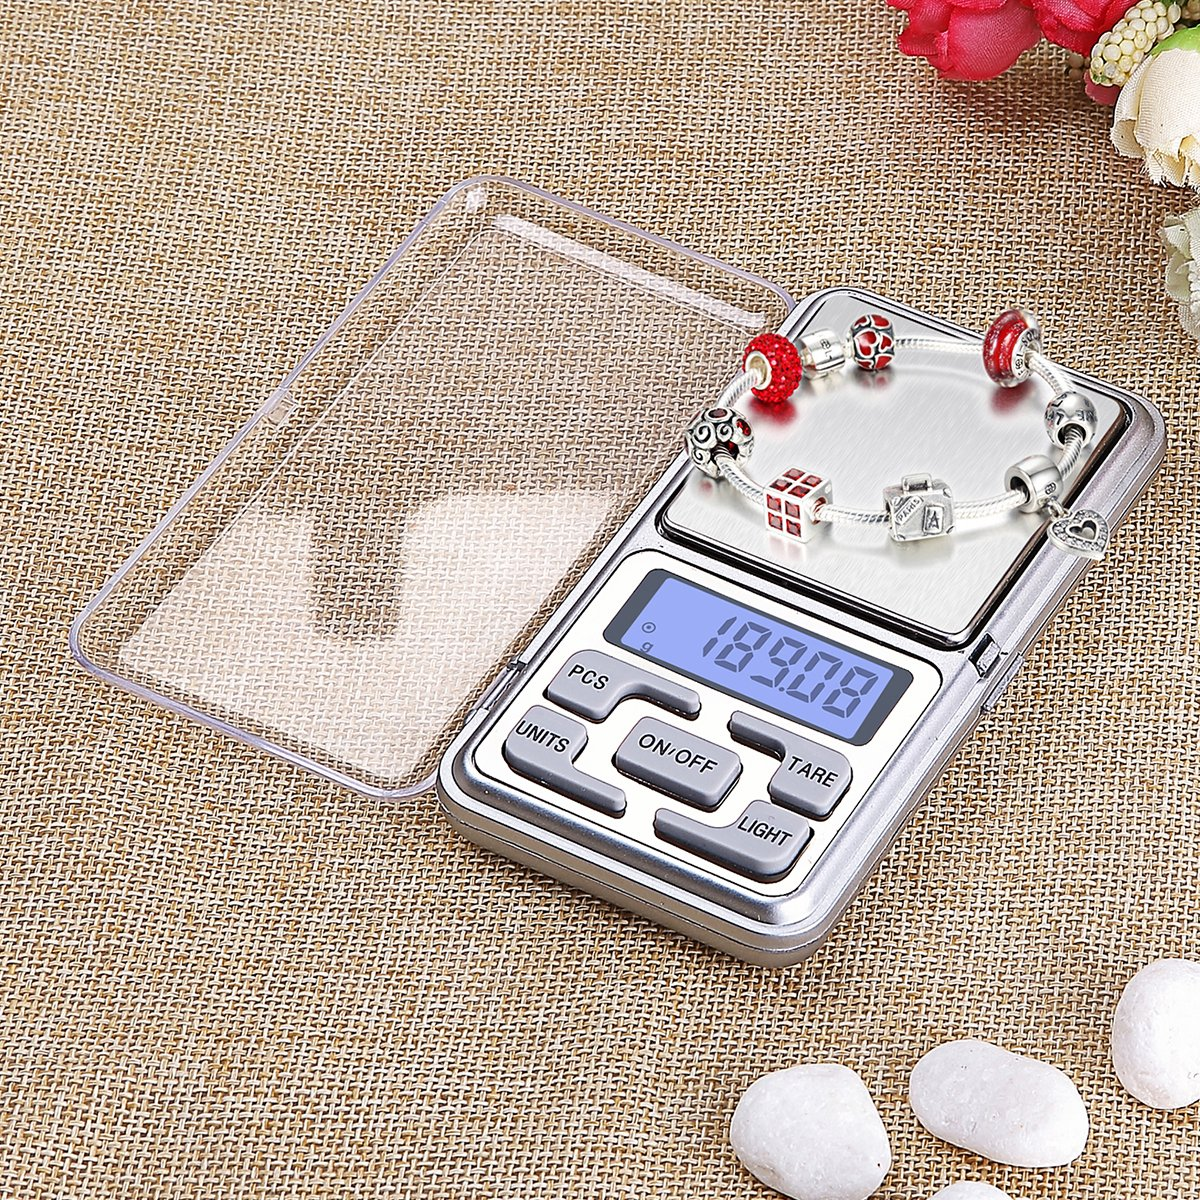 Mini Digital Weighing Scale 200g for Jewelry Coins Reload and Kitchen Scale with Back-Lit LCD Display CHAMVIS Digital Pocket Scale 200 x 0.01g